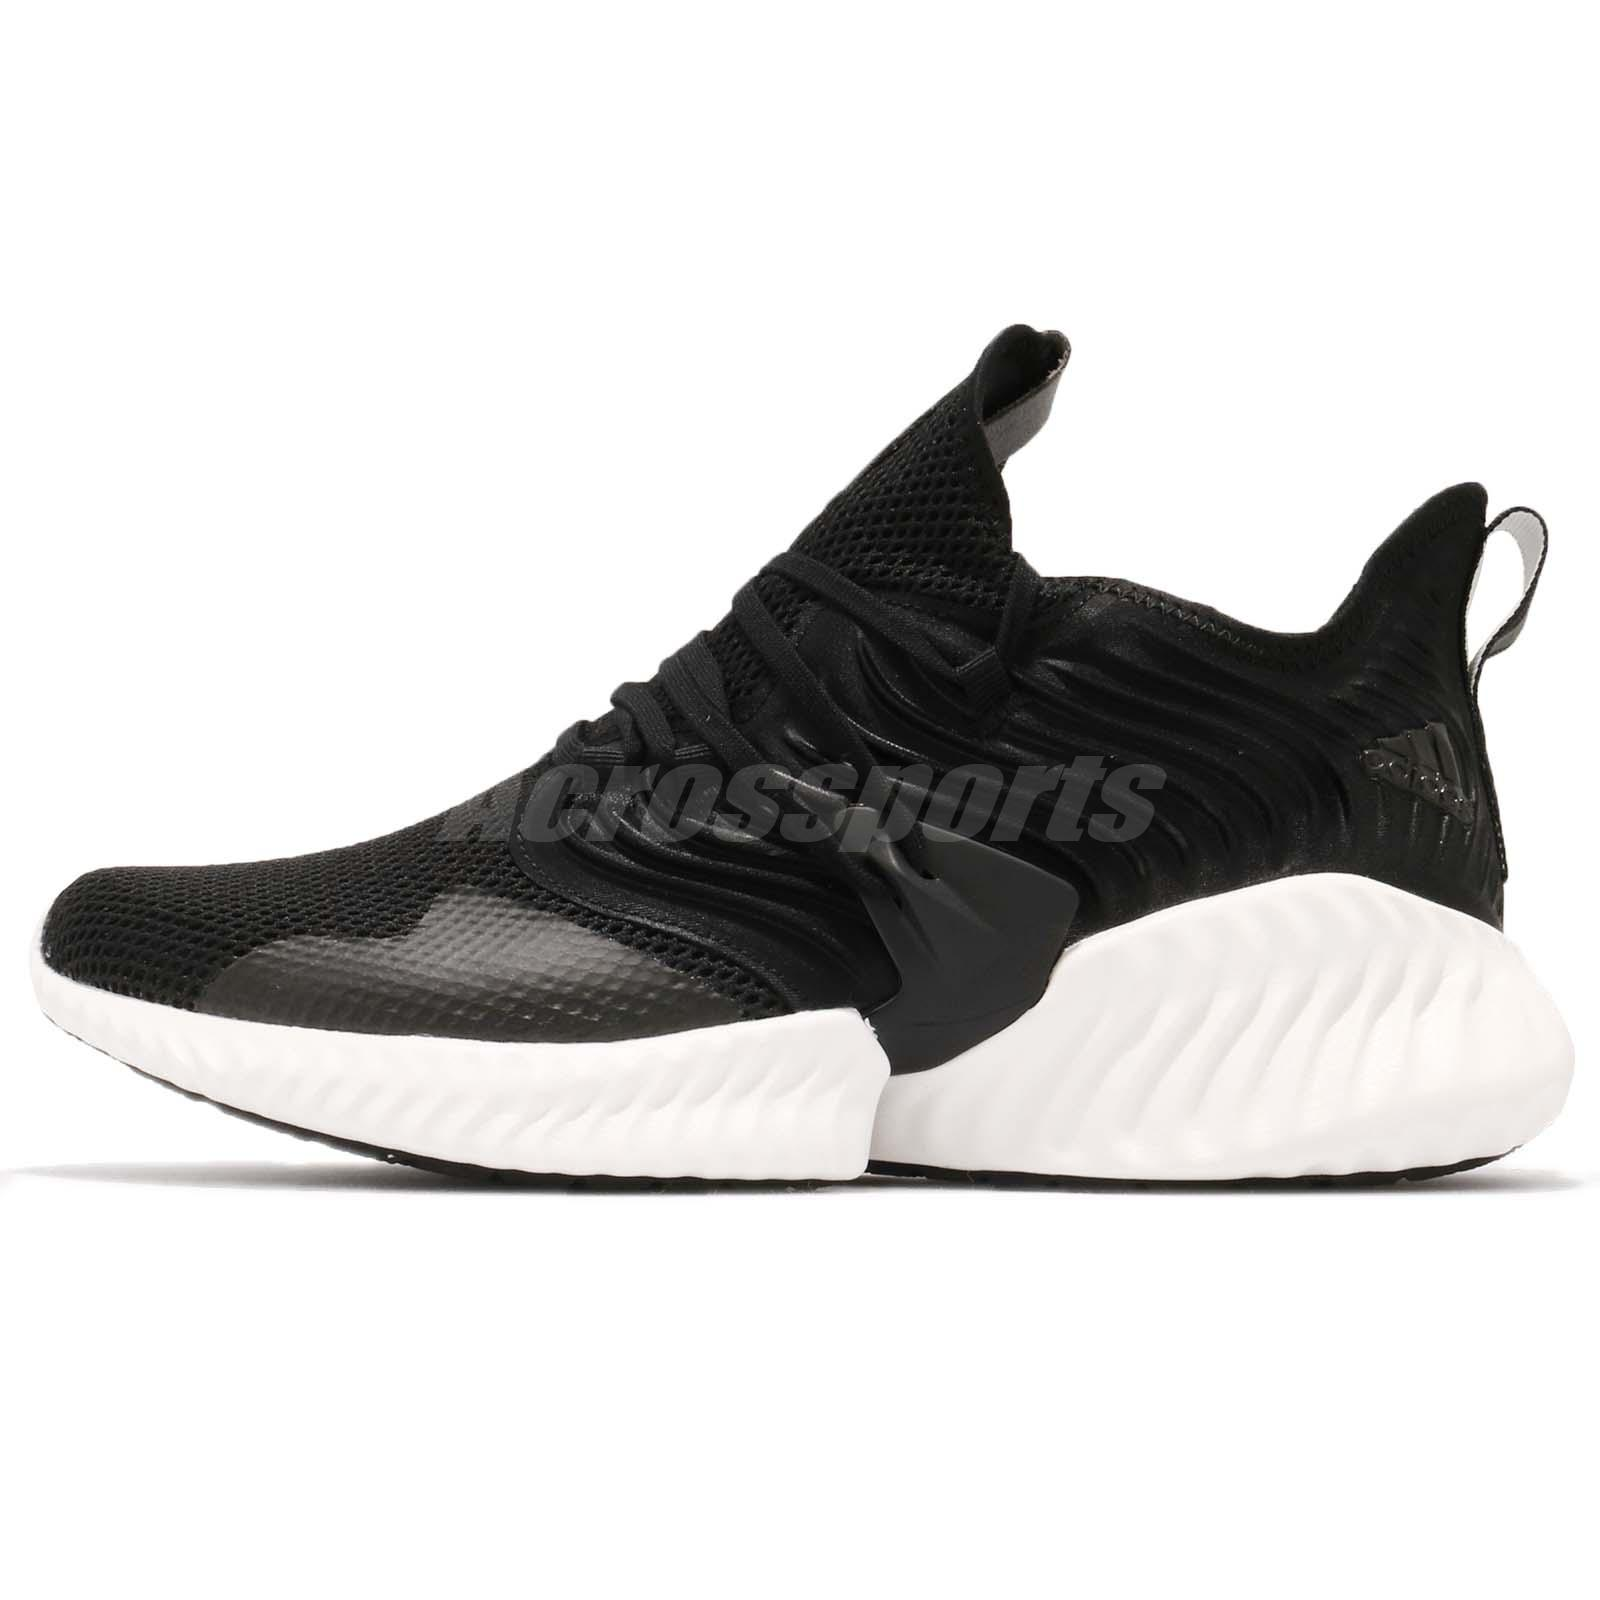 8aa1a22cf2f83 Details about adidas Alphabounce Instinct CC M Clima Black White Men  Running Shoes D97280